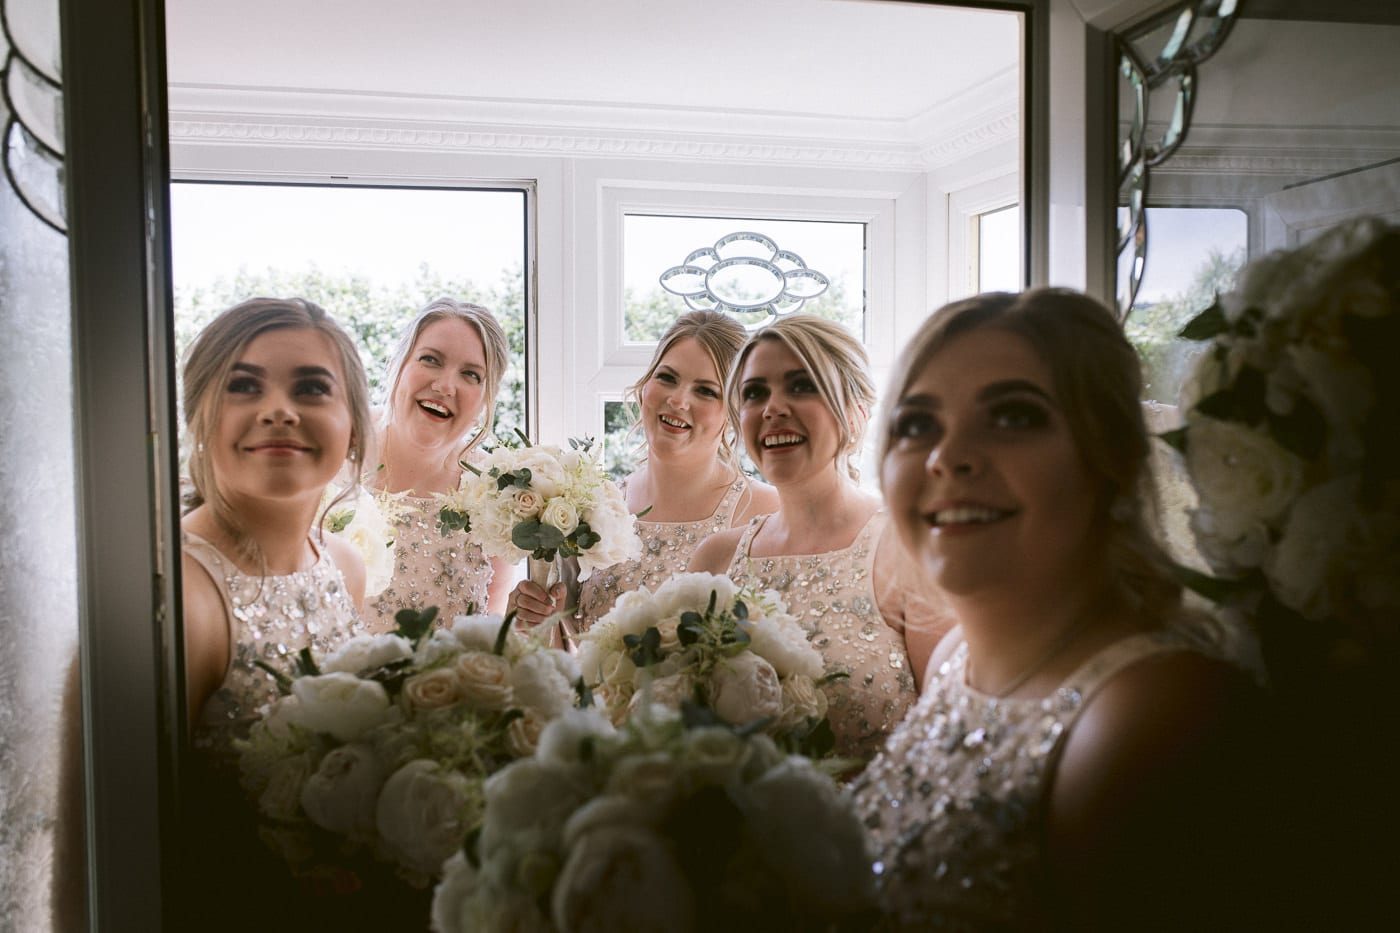 Smiling Photography of Wedding Day Bridesmaids and Arranged Flowers